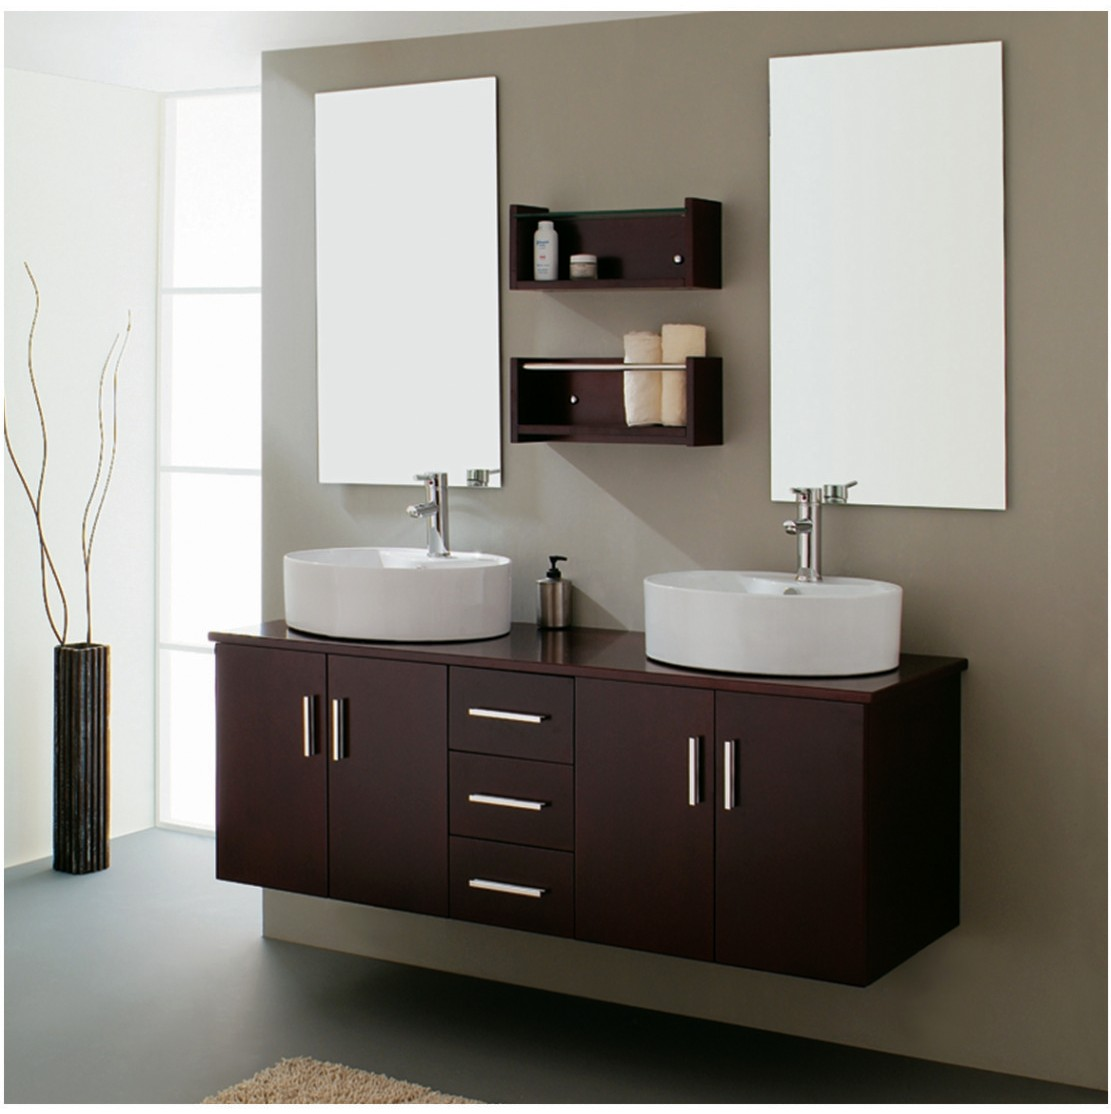 Modern bathroom double sink home decorating ideas for Furniture ideas for bathroom